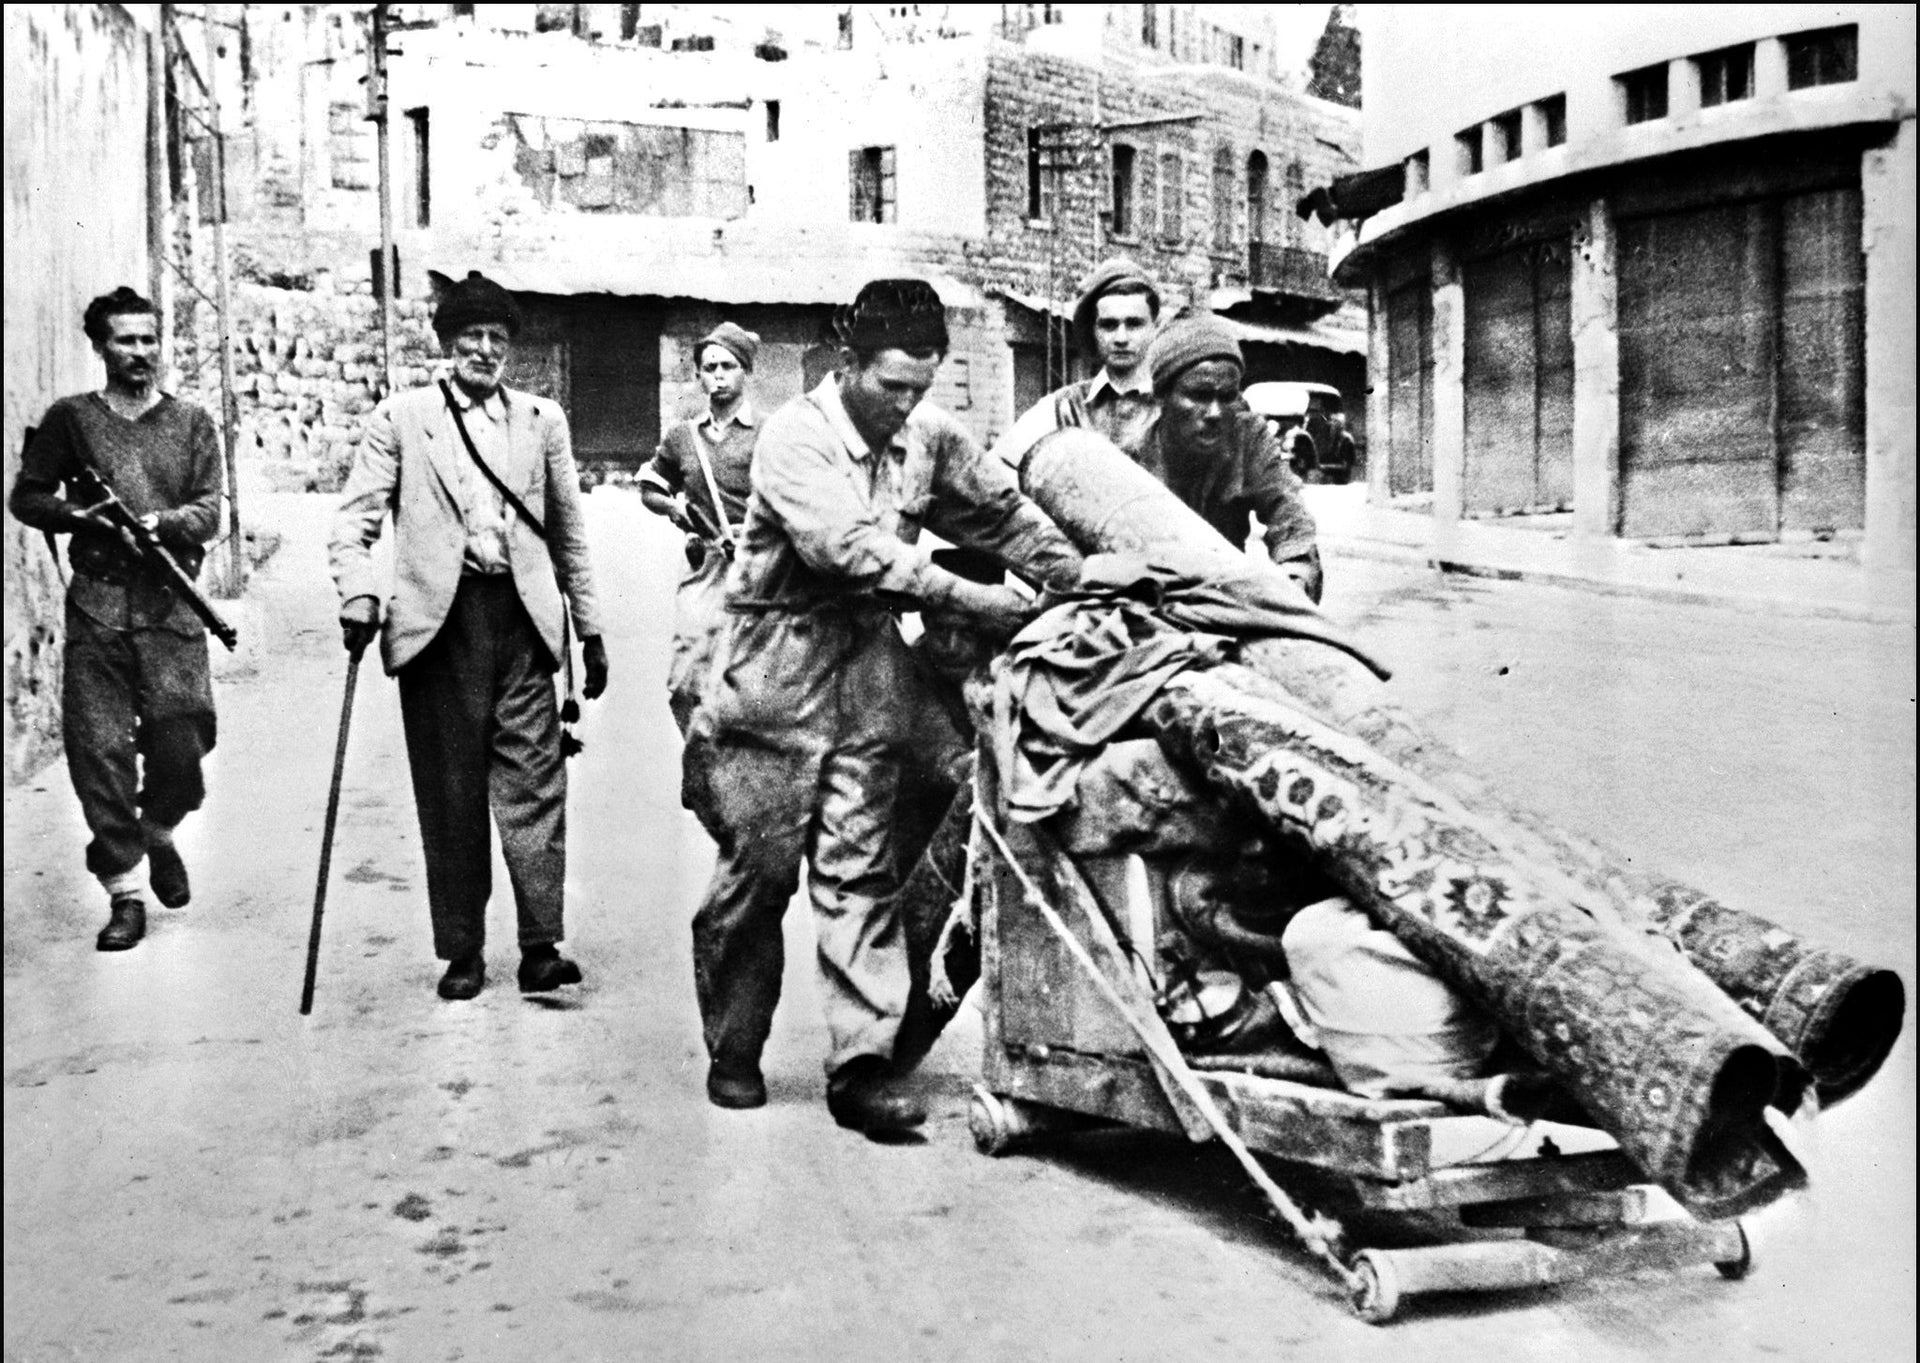 Three members of the Haganah escort three Palestinian Arabs expelled from Haifa on 12 May 1948, after the Jewish forces took over the harbor 22 April 1948.